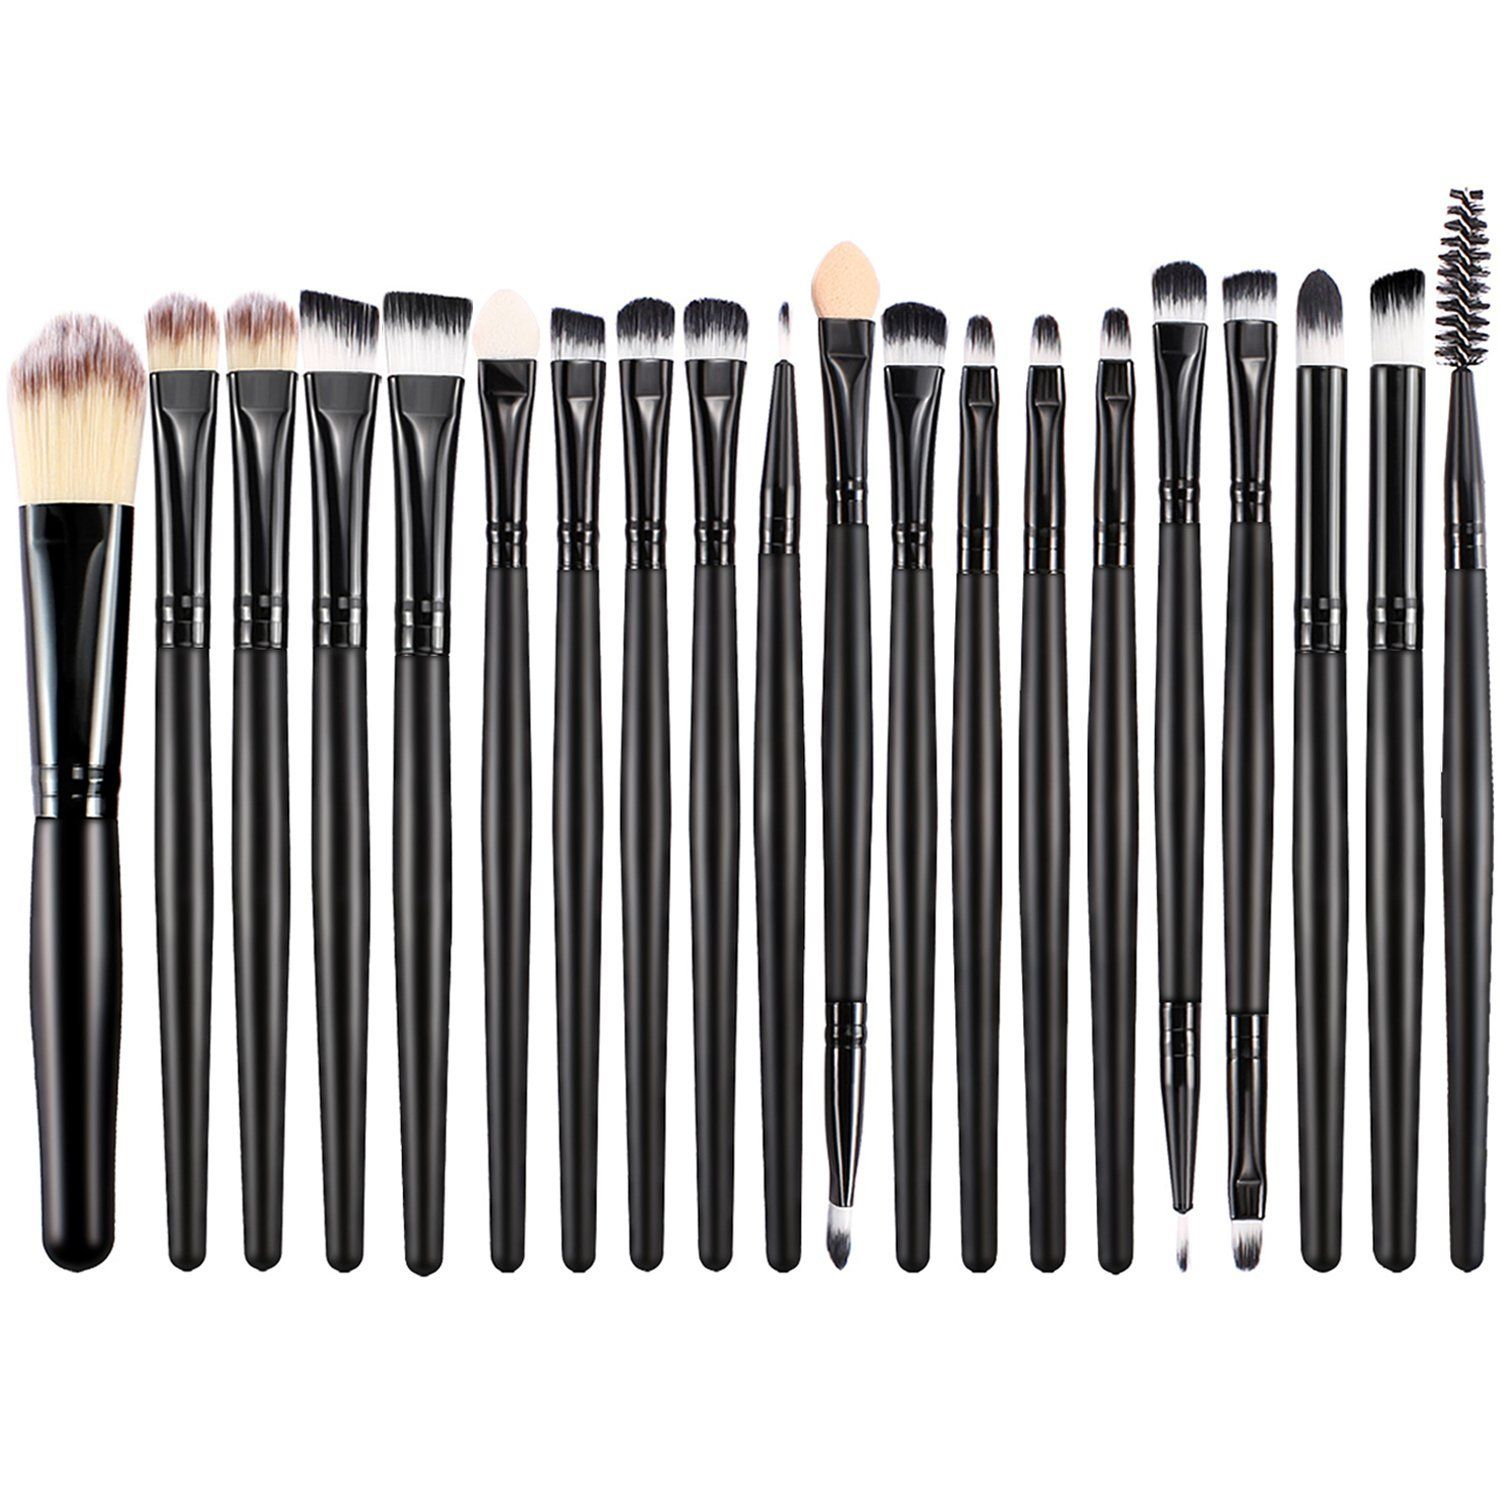 c2ff7a7dd5 BESTOPE Makeup Brushes 20 Pieces Makeup Brush Set Professional Face  Eyeliner Shadow Blush Cosmetic Brushes Set for Powder Liquid Cream >>> Want  additional ...